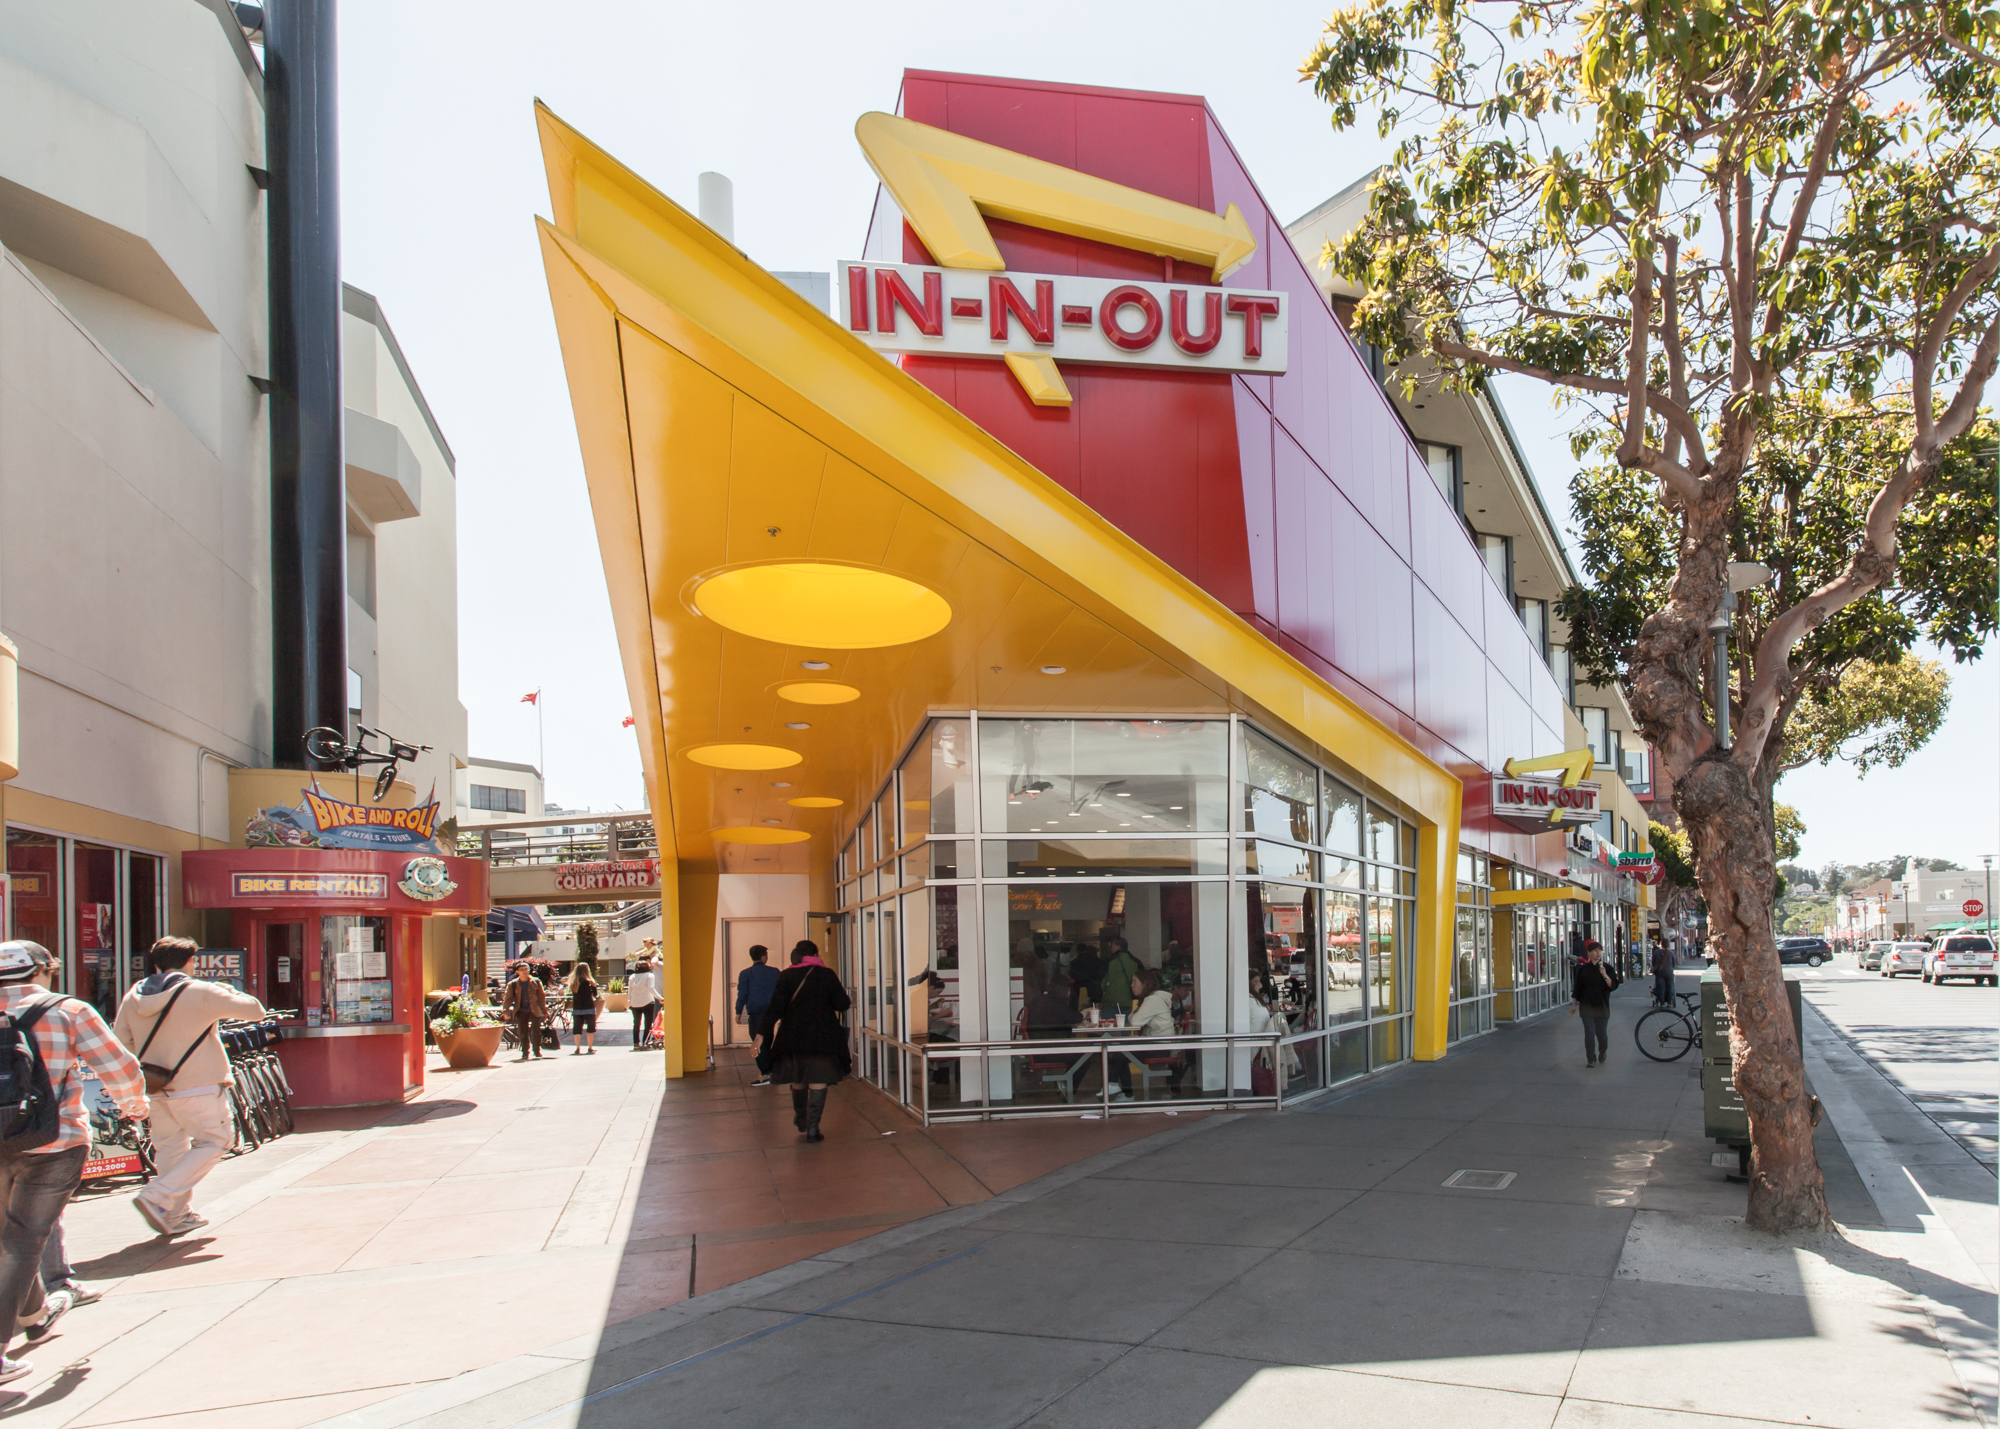 The front door of In-N-Out Burger at Fisherman's Wharf, including the restaurant's yellow, triangular awning and iconic yellow, red, and white sign.